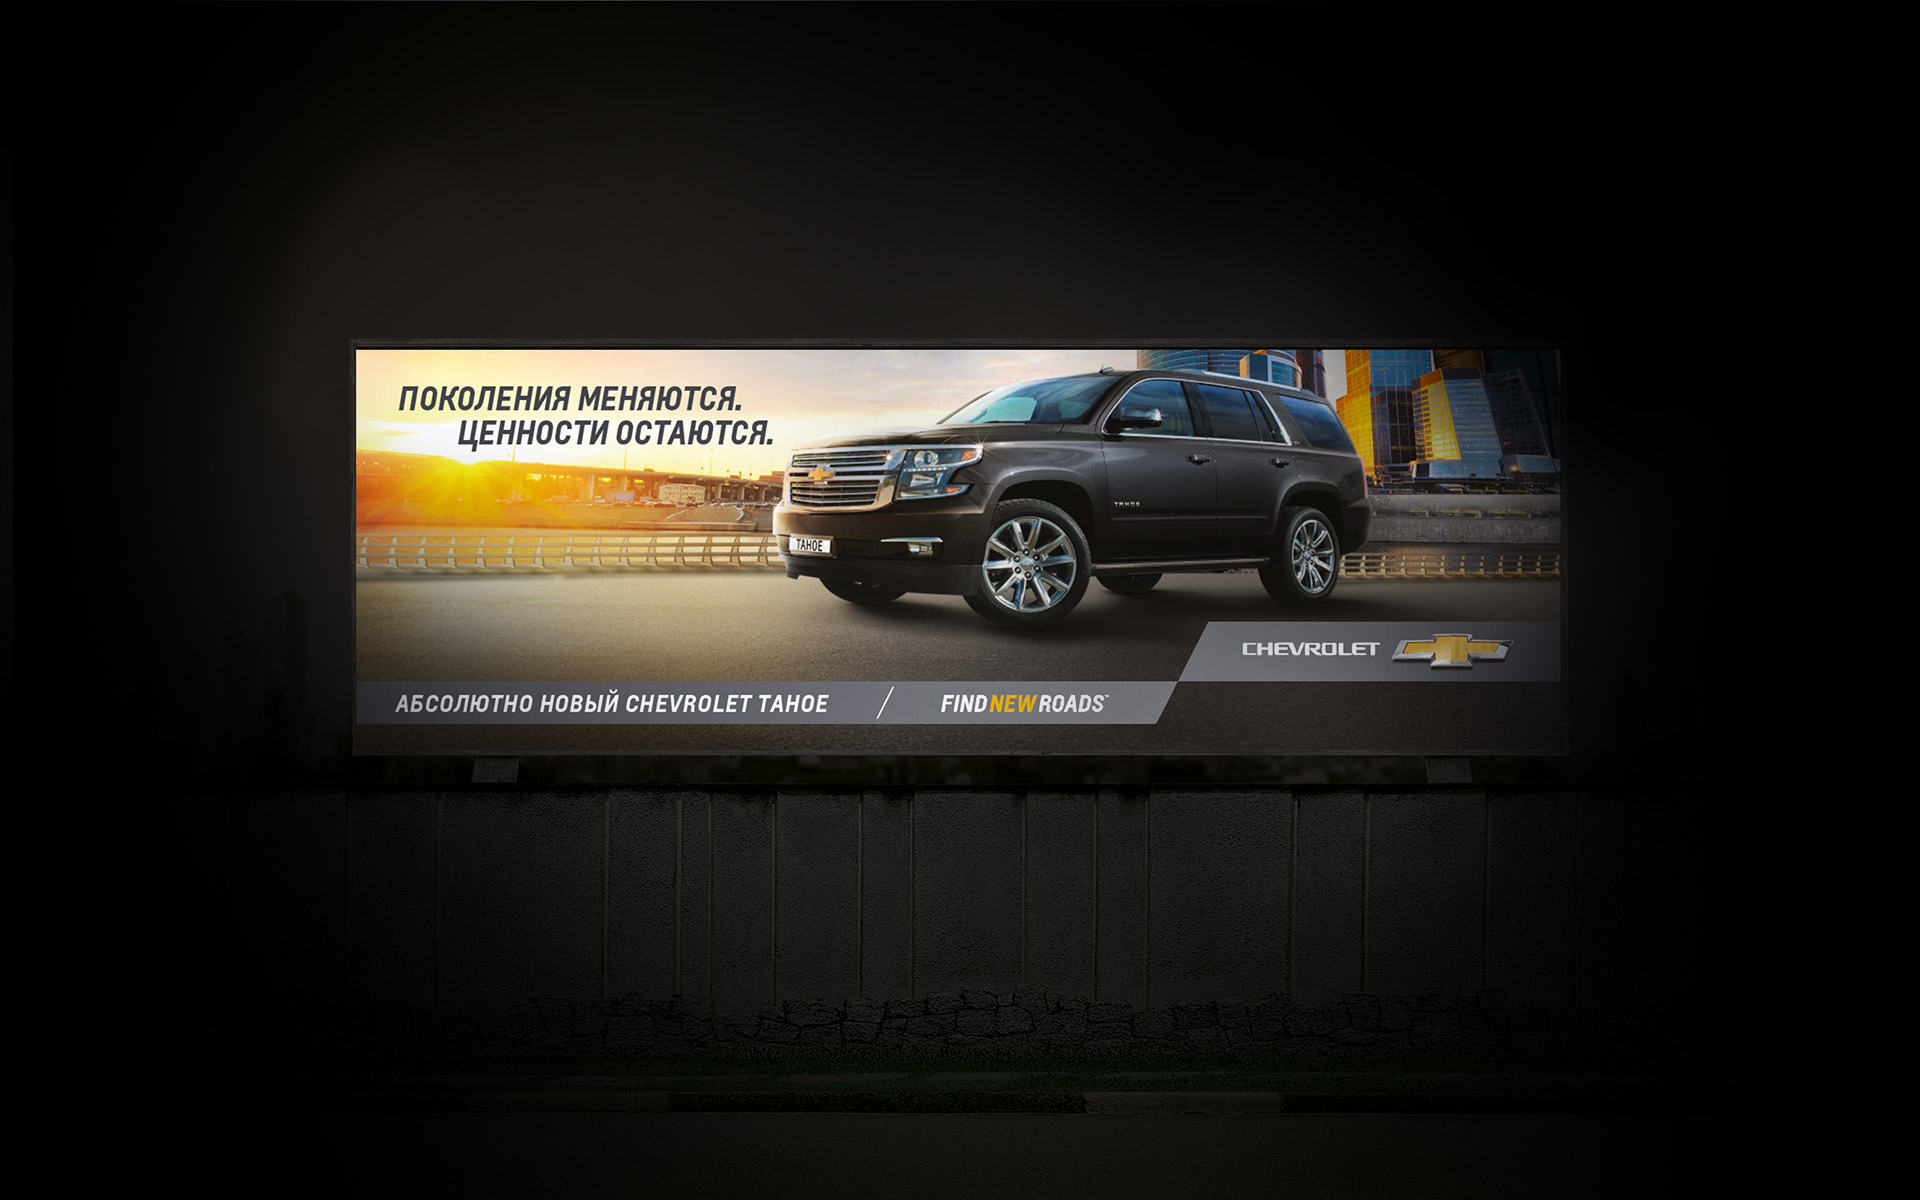 Chevrolet Tahoe 2015 advertising.